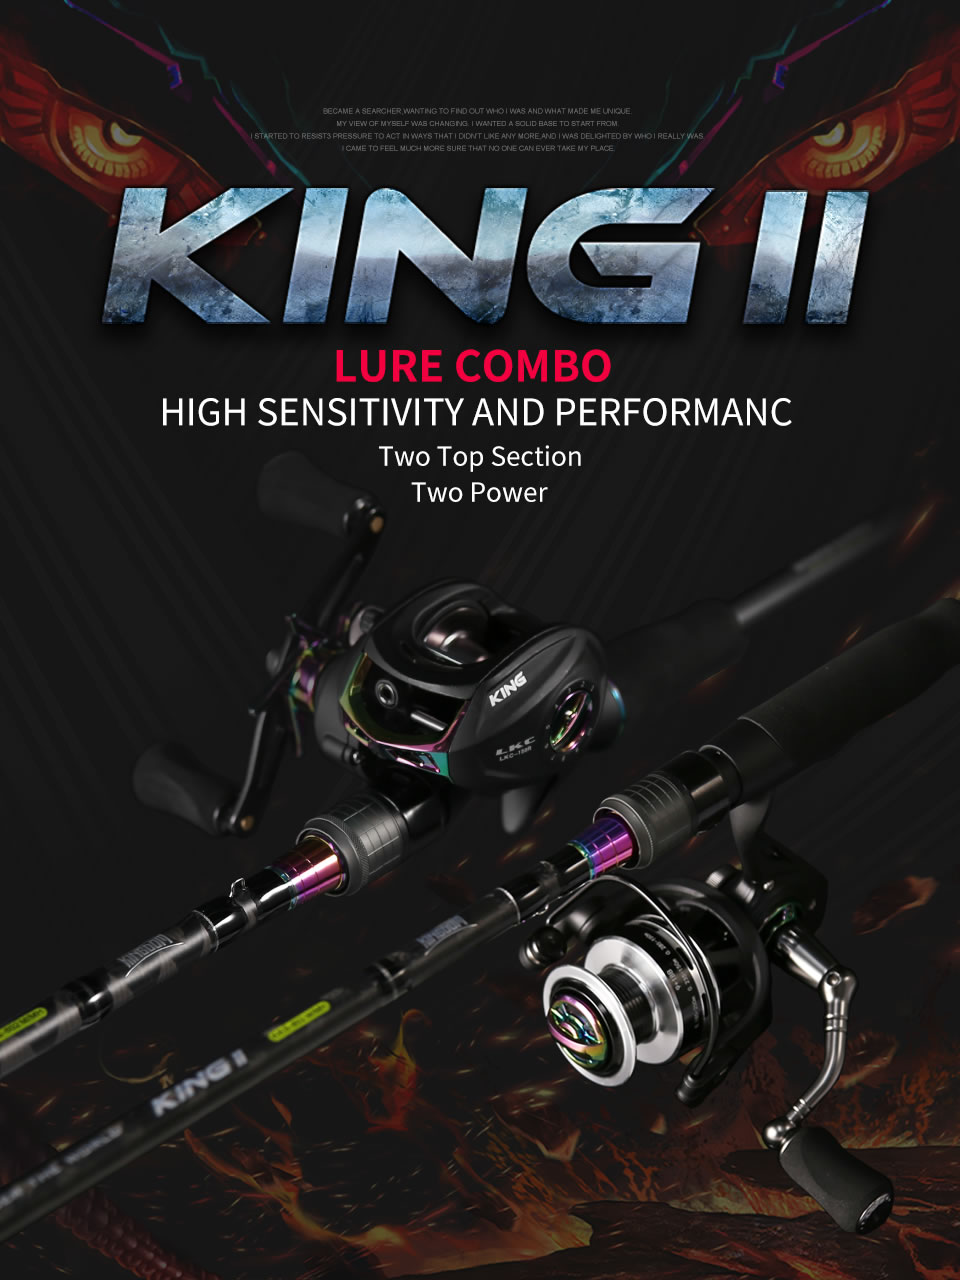 Kingdom KING II Spinning Rod Combo Baitcasting Spincasting Fishing Rods Reel set 2pc Top Section and 2pc Power Fishing Tackle (1)